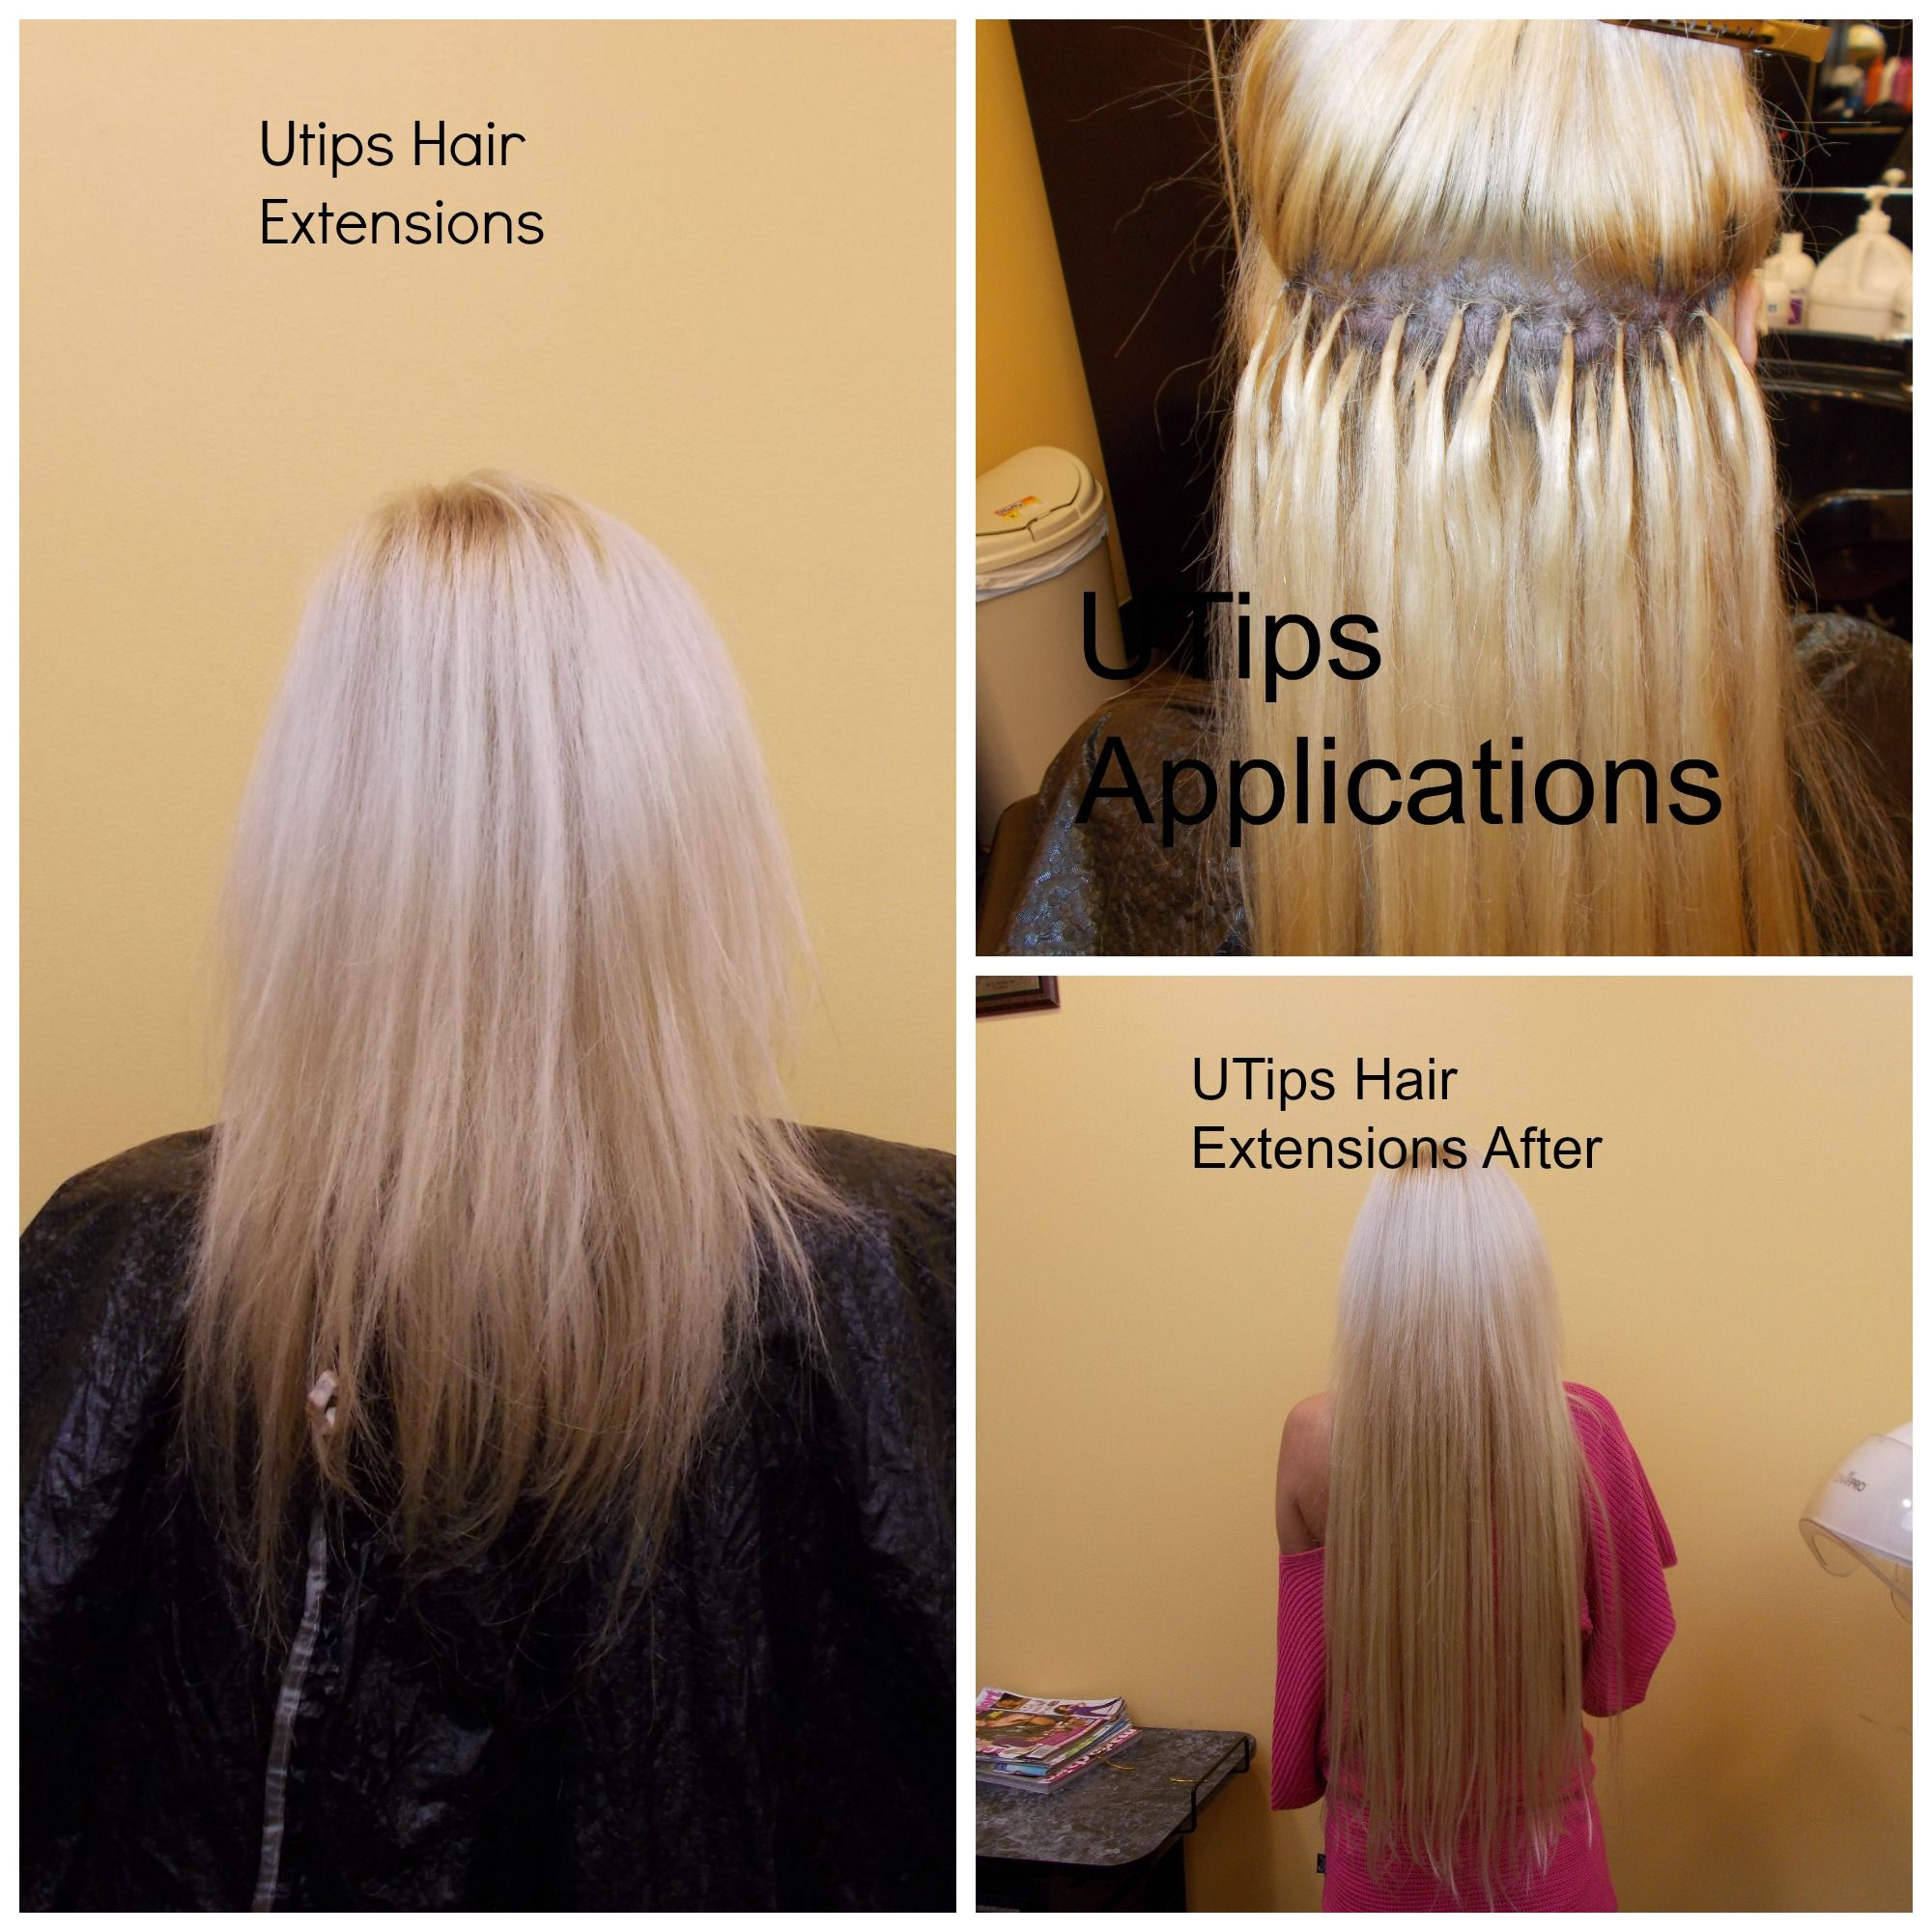 Utips Hair Extensions Installed With 100 Remy Hairll For A